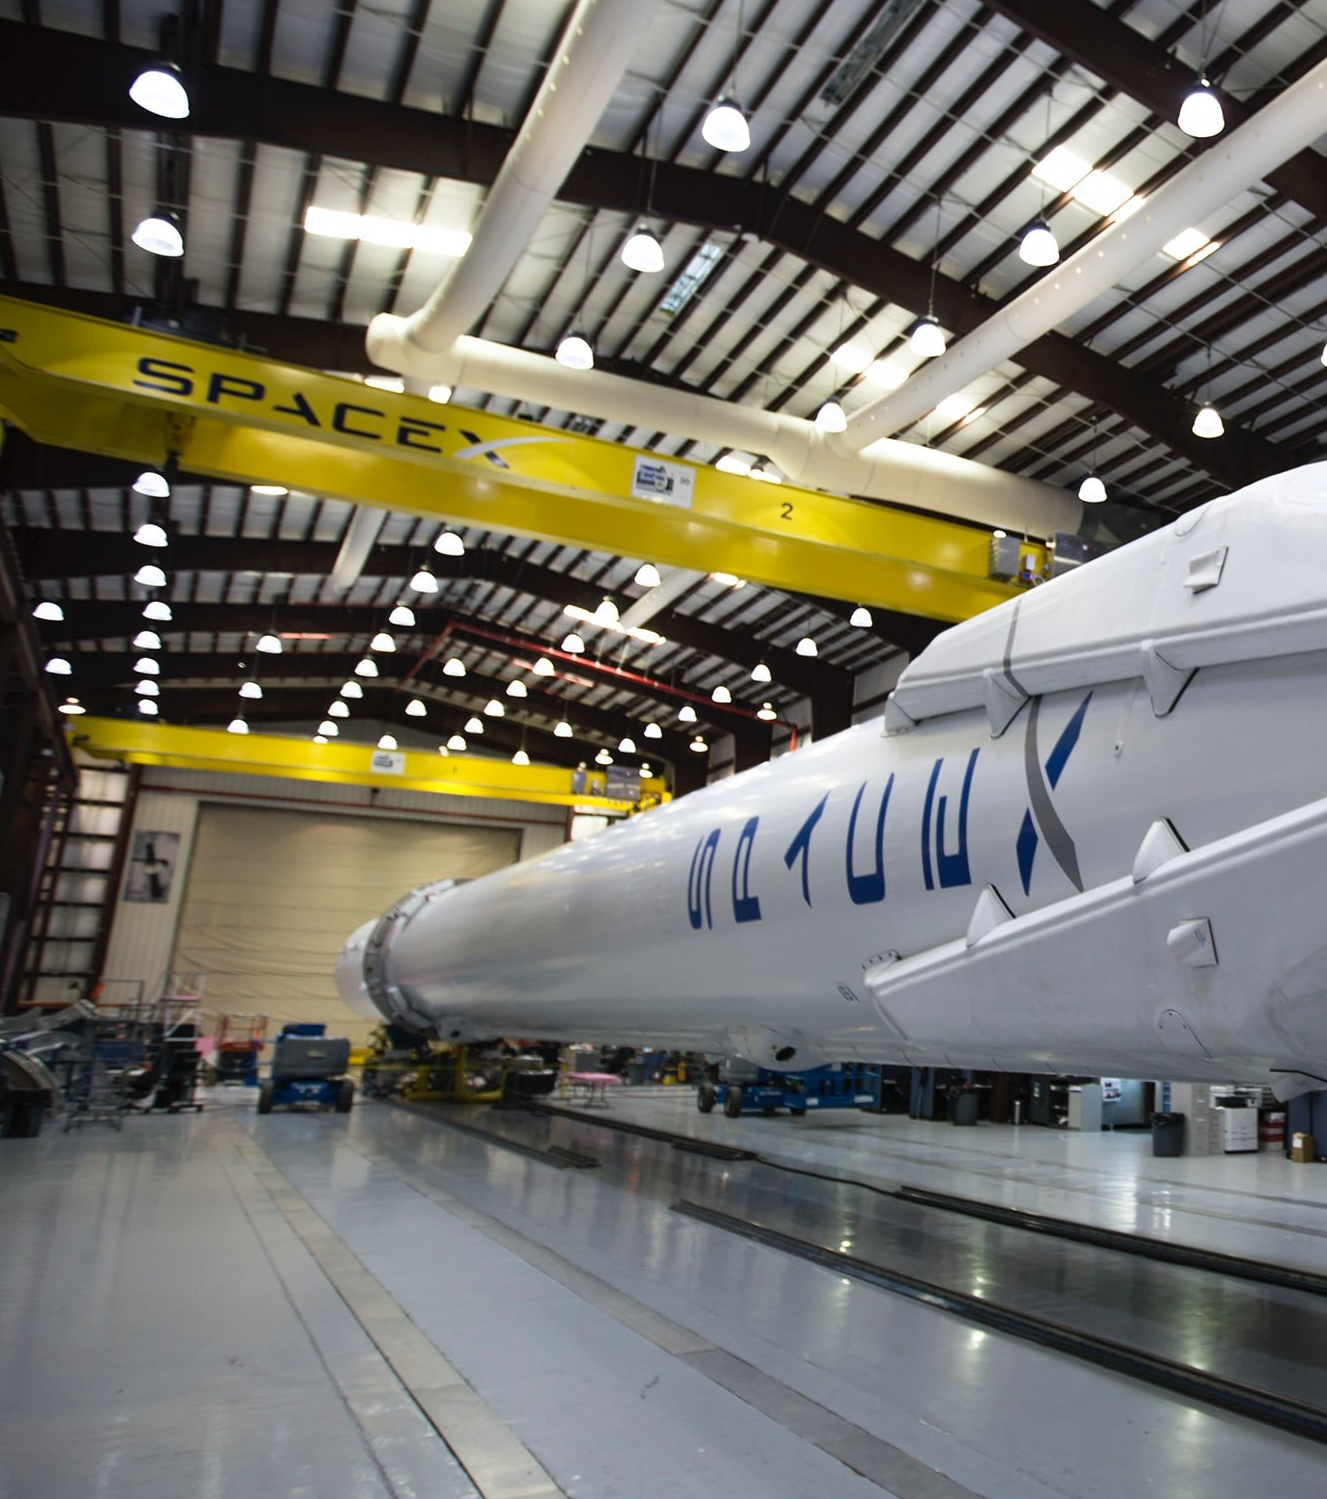 spacex rocket in the garage